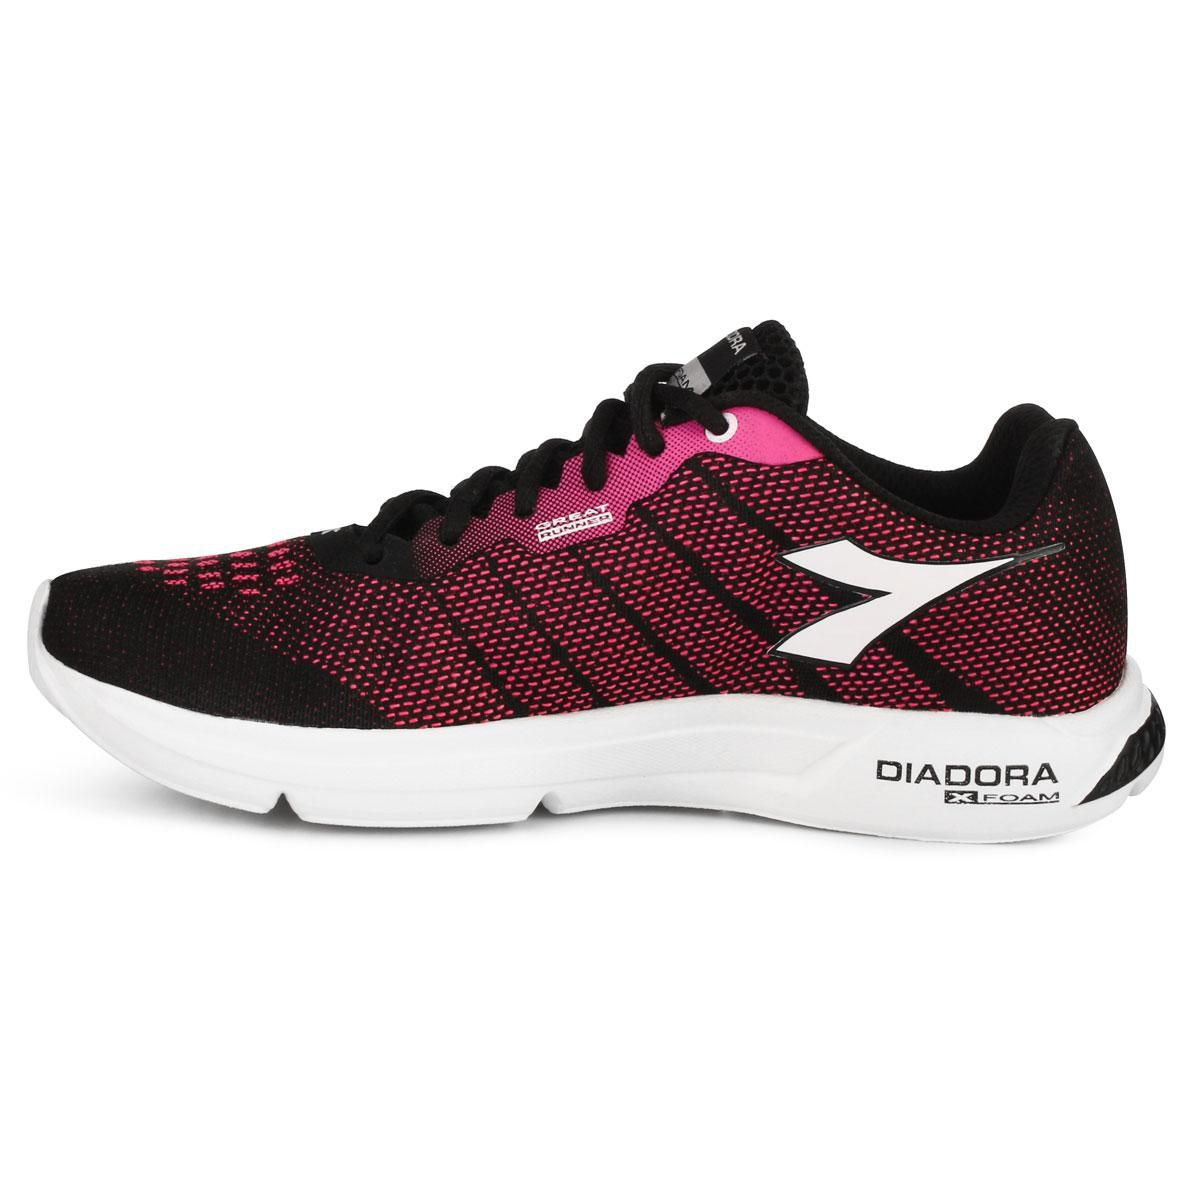 Tenis Diadora Great Training Feminino Rosa